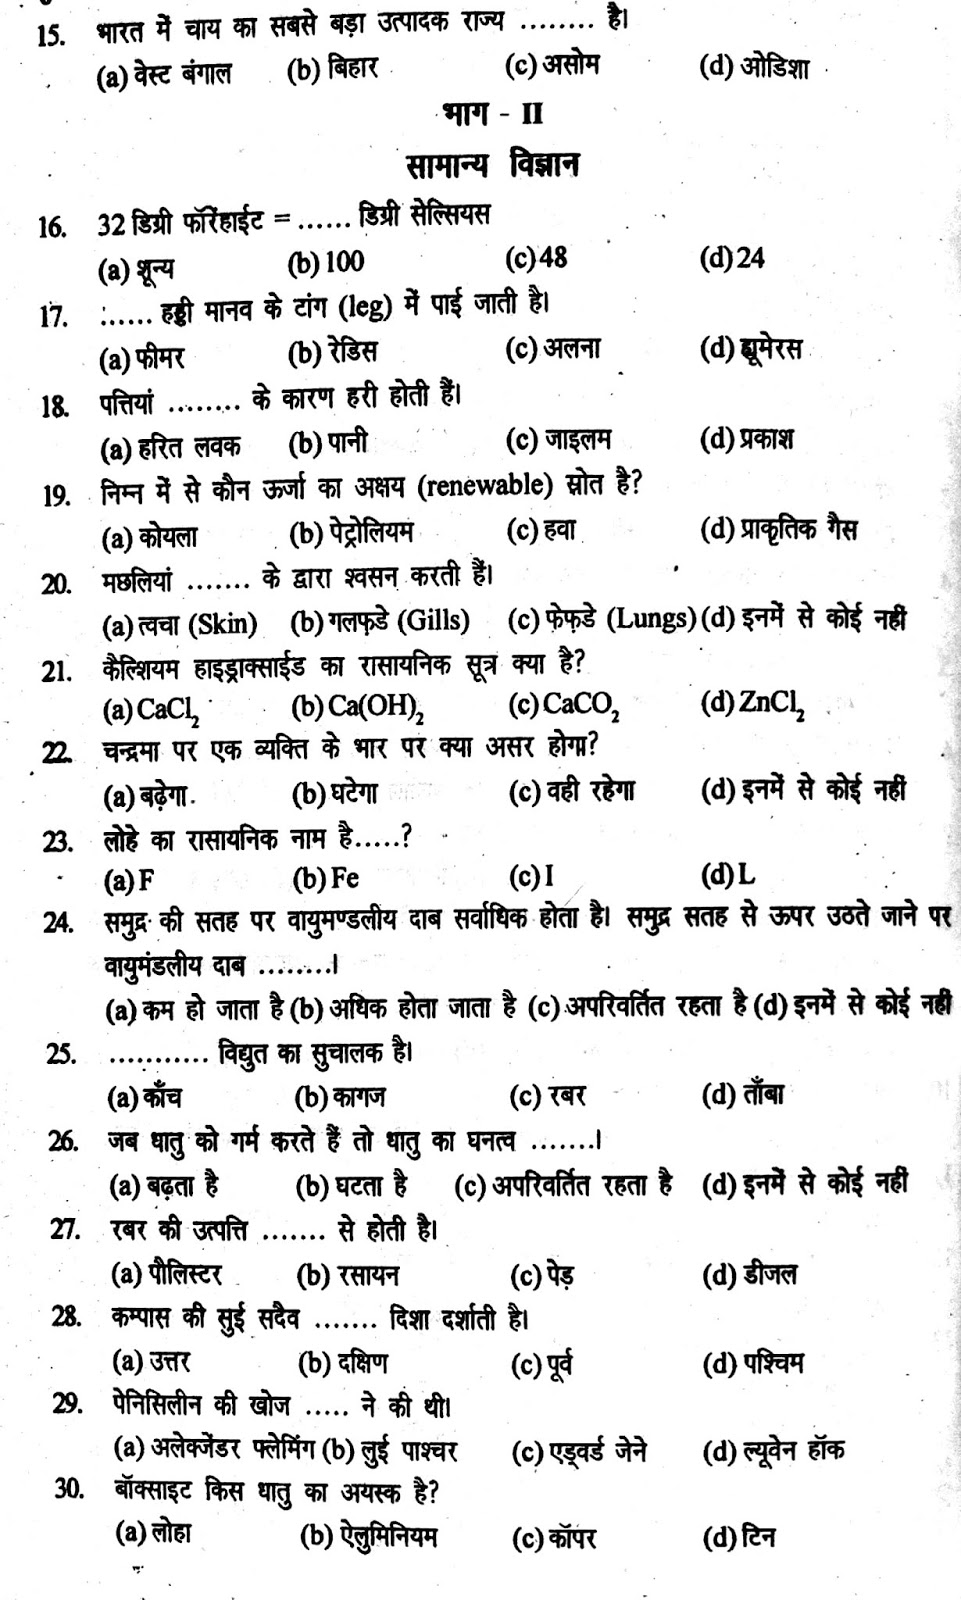 Indian army gd question paper 2019 with Solution